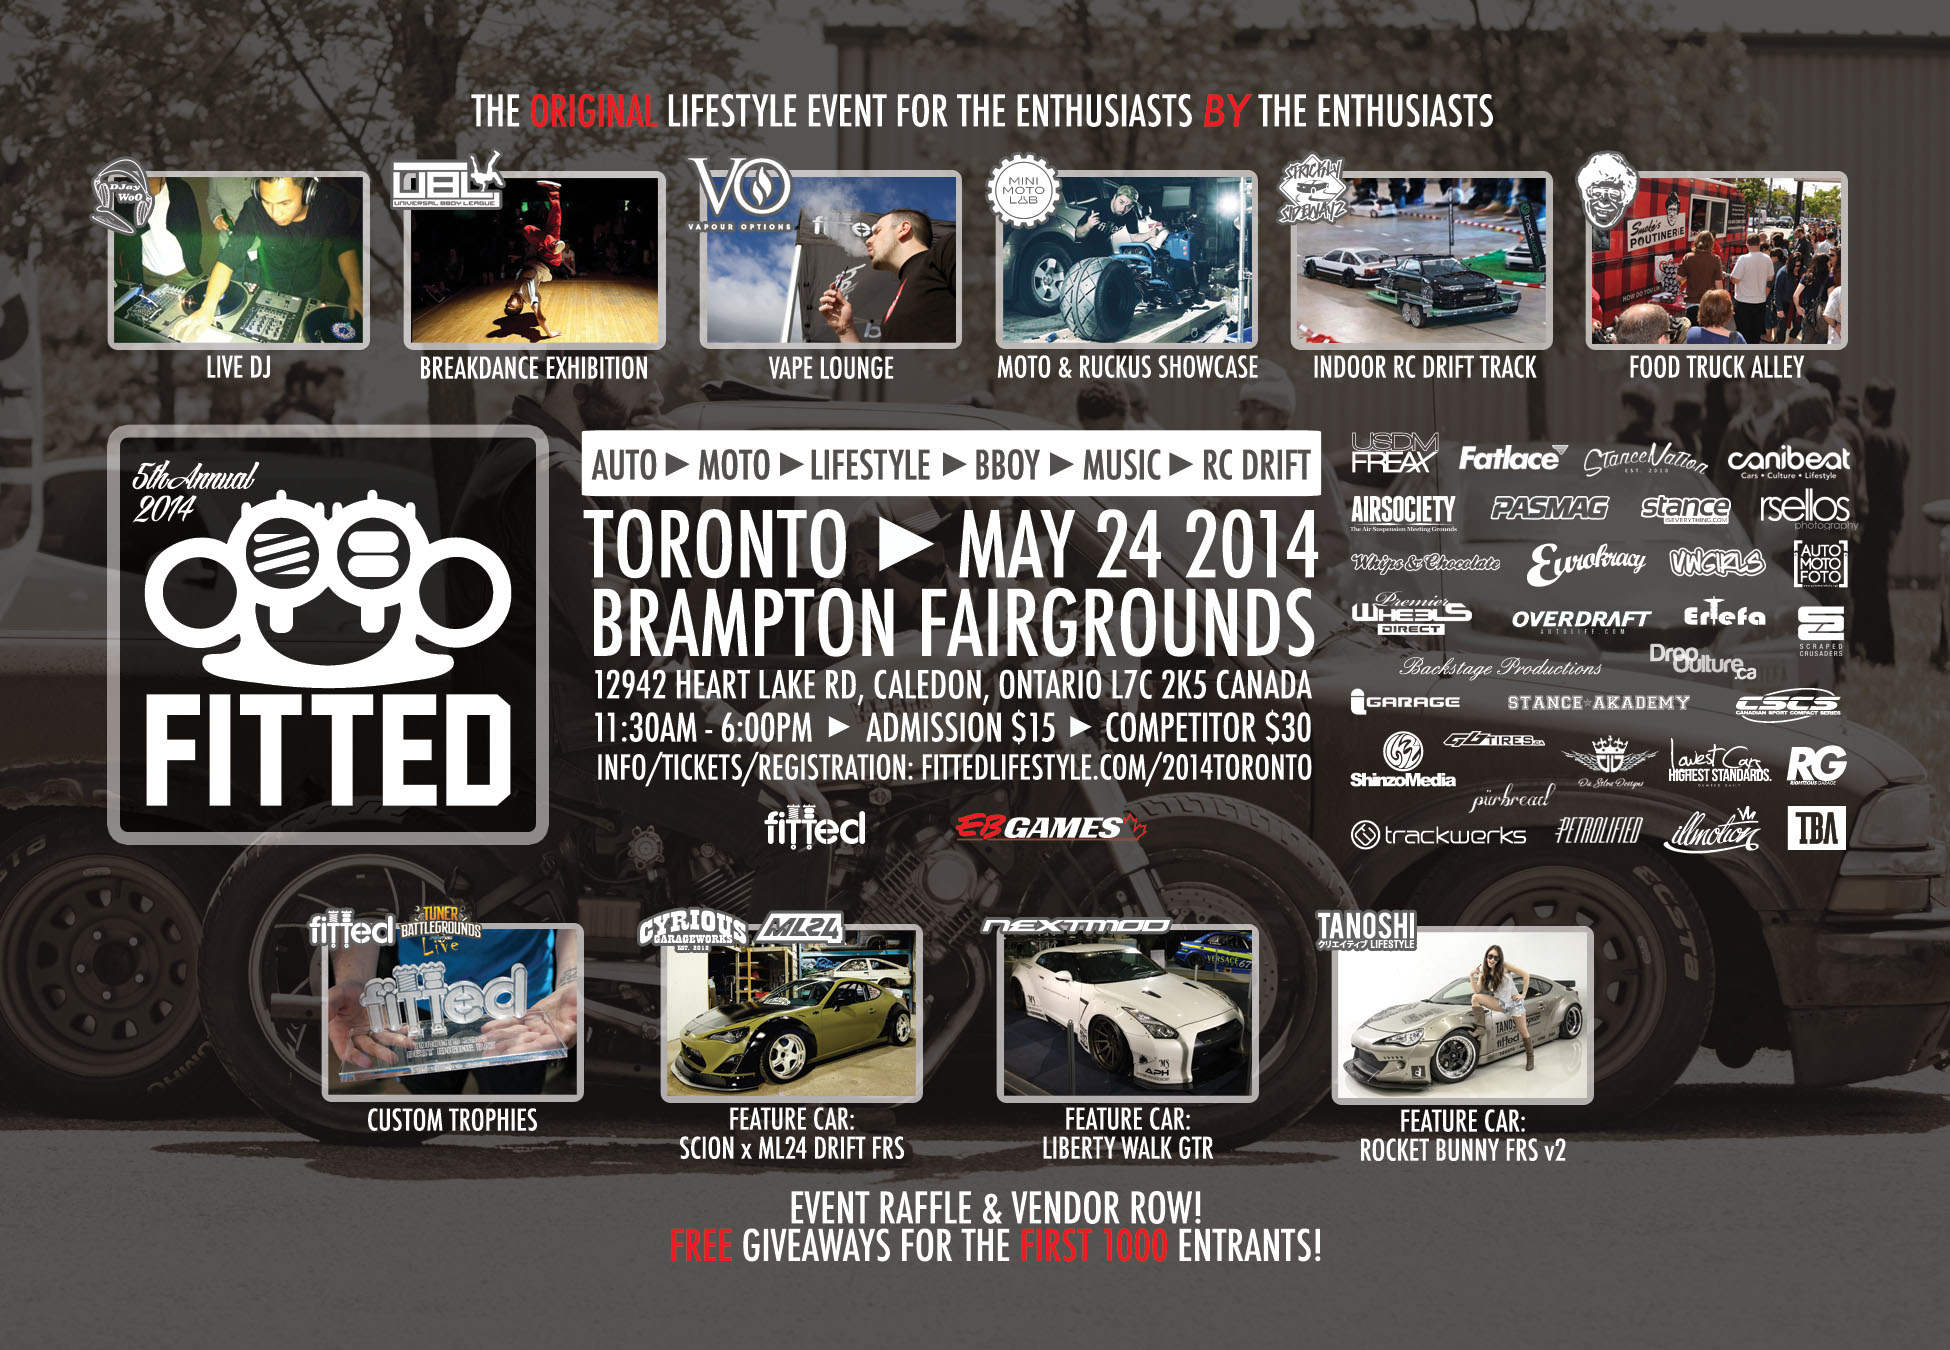 PASMAG-2014-Fitted-5th-Annual-Car-Show-Toronto-Brampton-Auto-Moto-Lifestyle-Bboy-Music-RC-Drift-May-24-2014-back